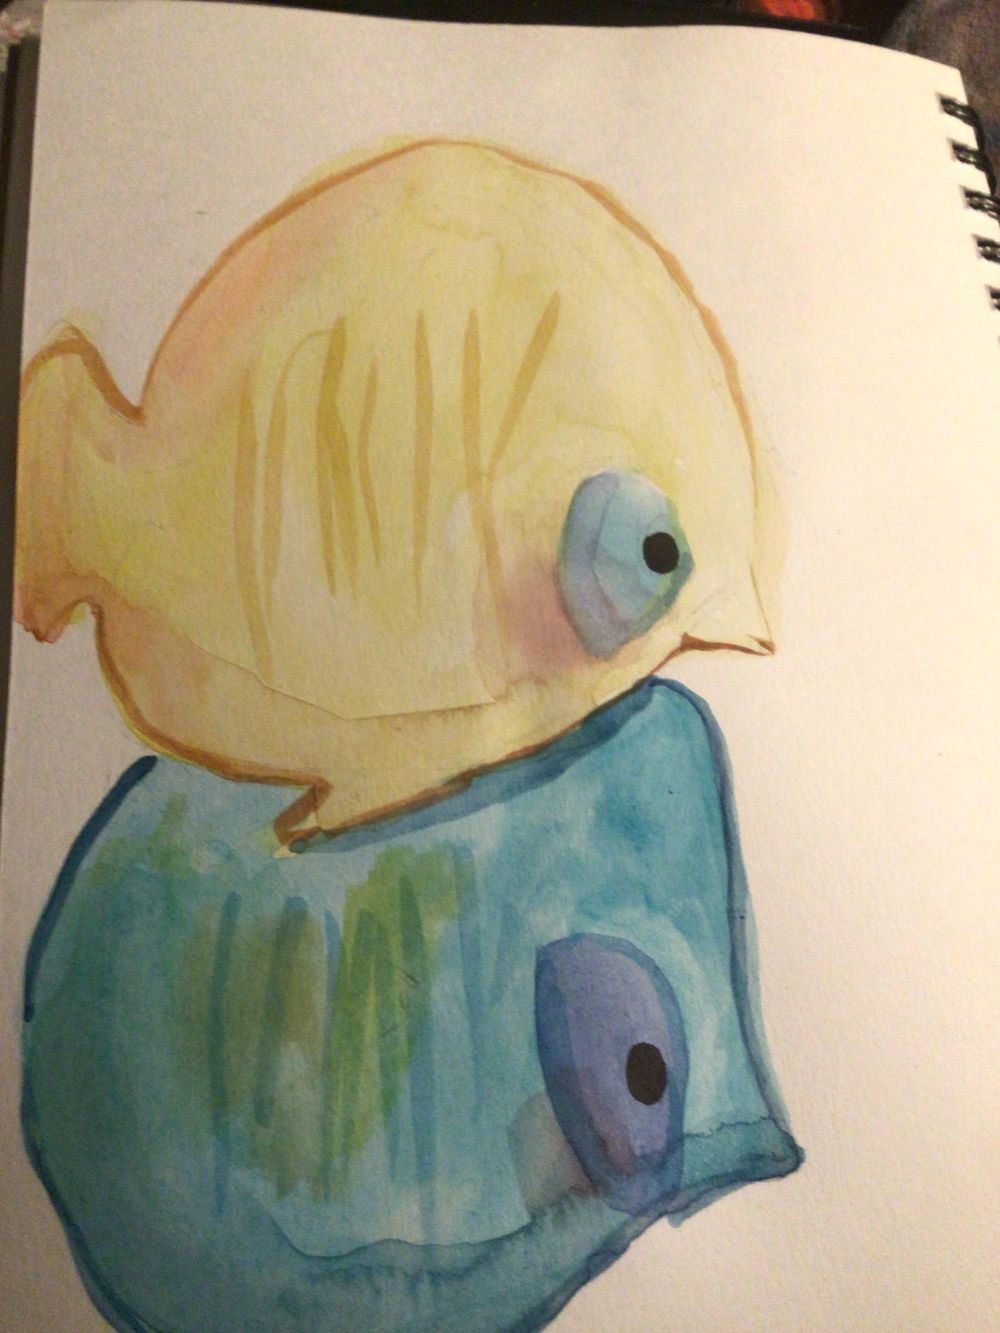 Watercolors - image 5 - student project